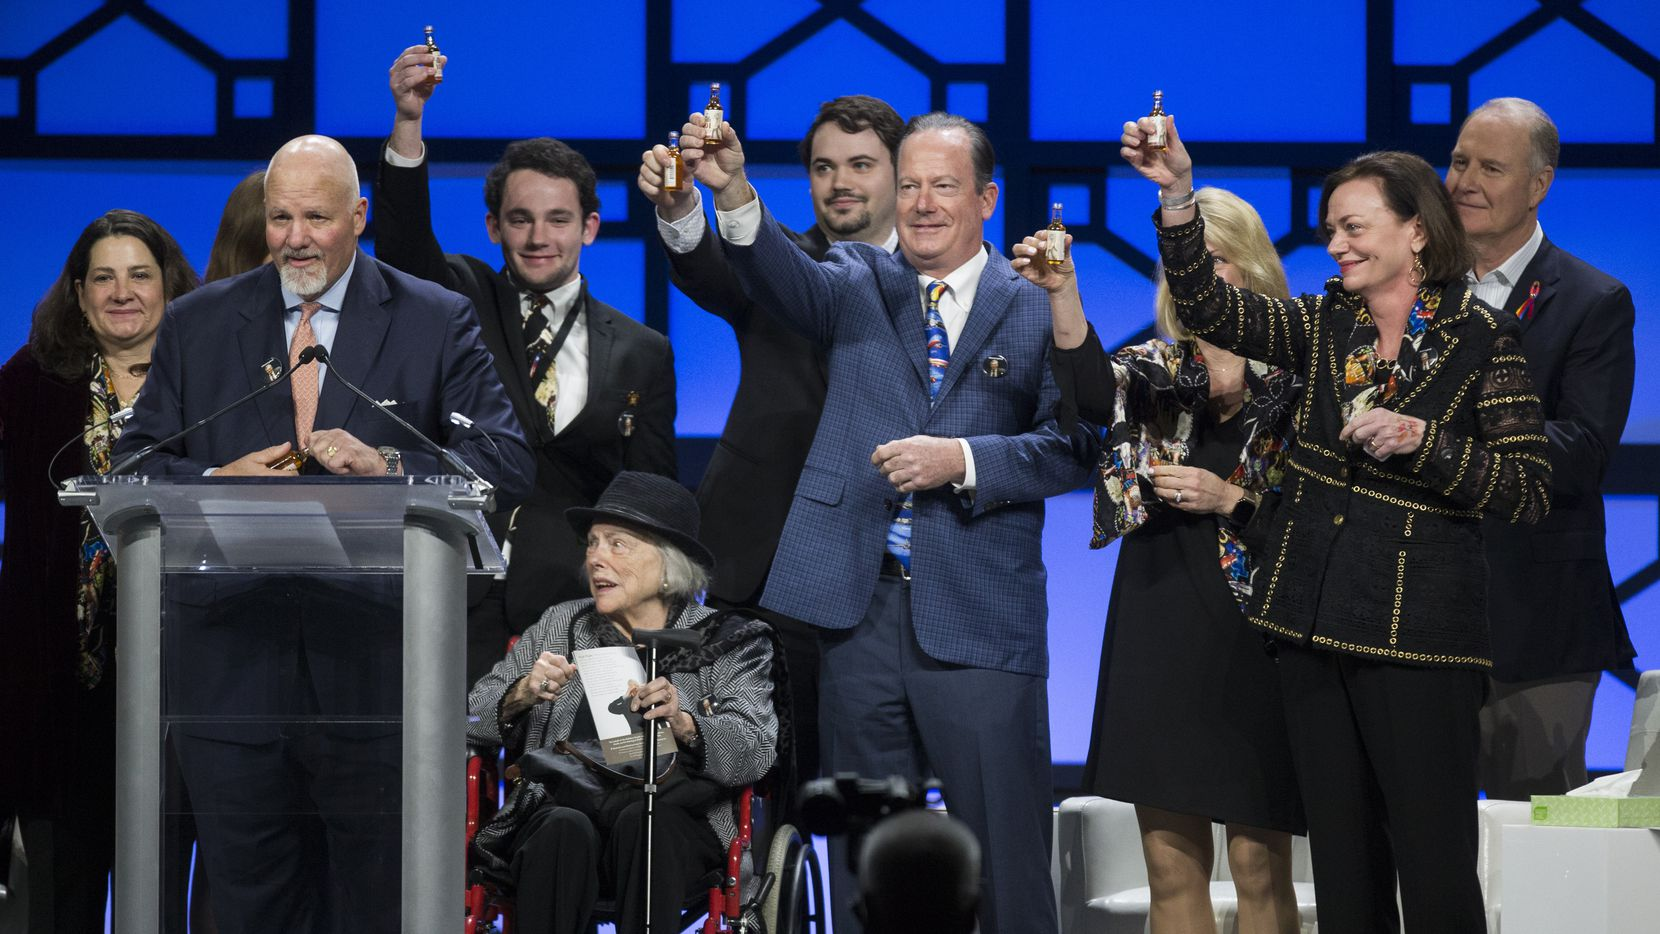 Family members, including wife Joan Kelleher, seated at center, of the late Southwest Airlines co-founder Herb Kelleher raise bottles of Wild Turkey in tribute during a celebration of life event on Tuesday, Jan. 22, 2019 at the Kay Bailey Hutchison Convention Center in Dallas.